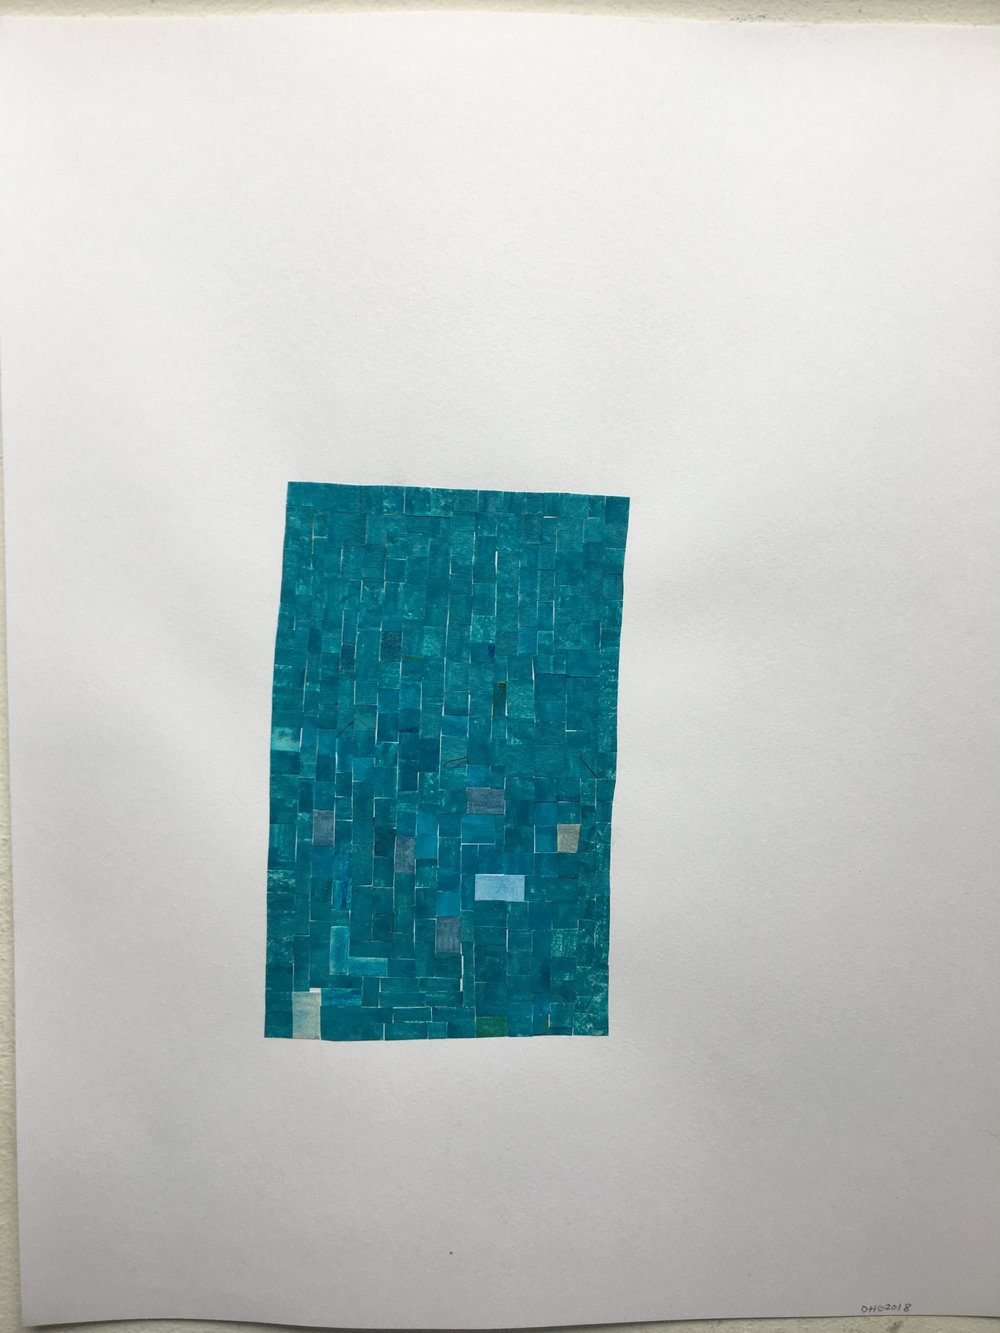 "blue shape, 2018, 13"" x 11"" (16 x 13 in. framed) collage, ink on paper $800 (SOLD)"